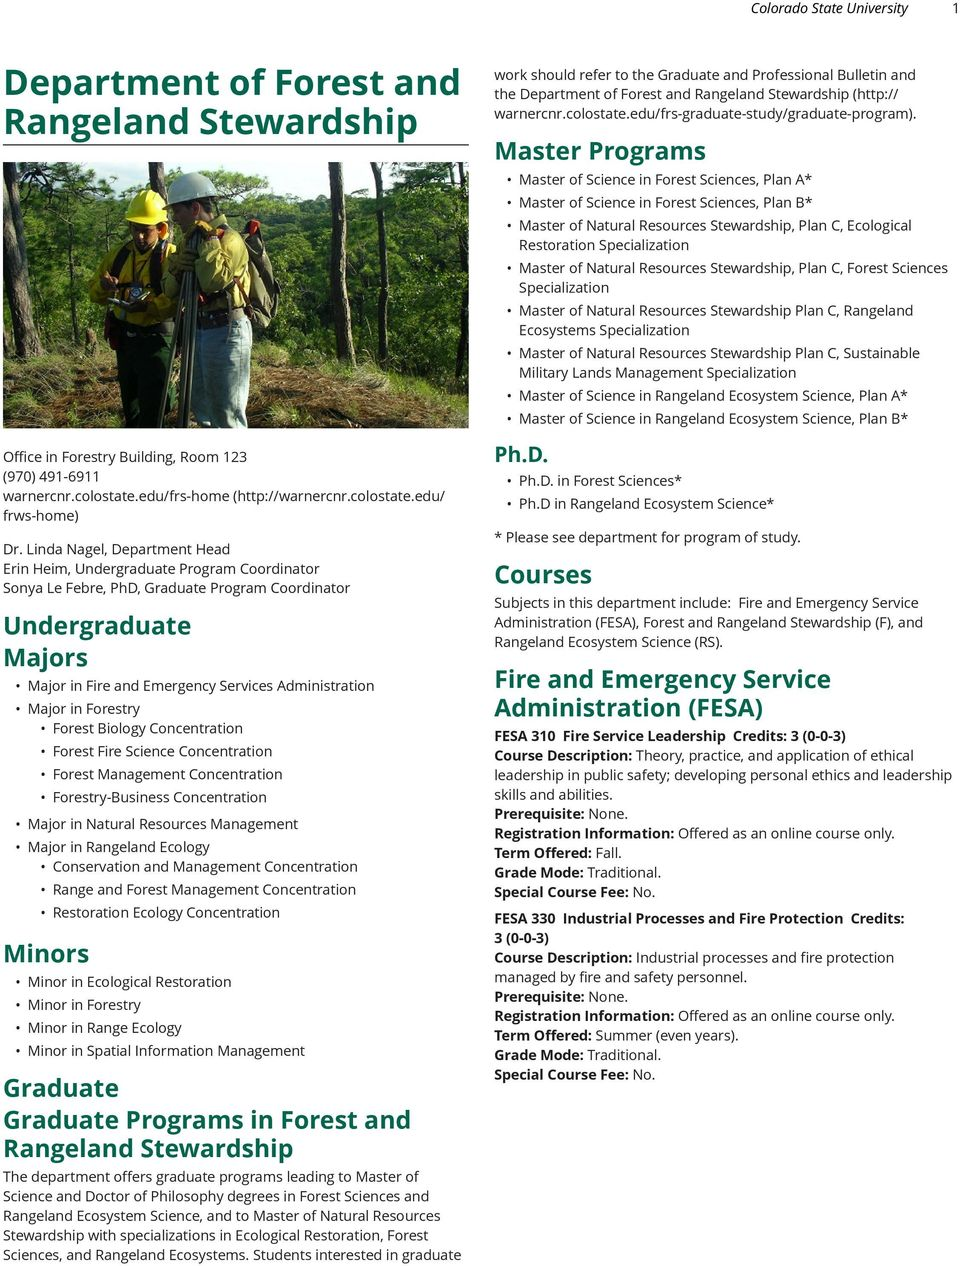 Major in Forestry Forest Biology Concentration Forest Fire Science Concentration Forest Management Concentration Forestry-Business Concentration Major in Natural Resources Management Major in